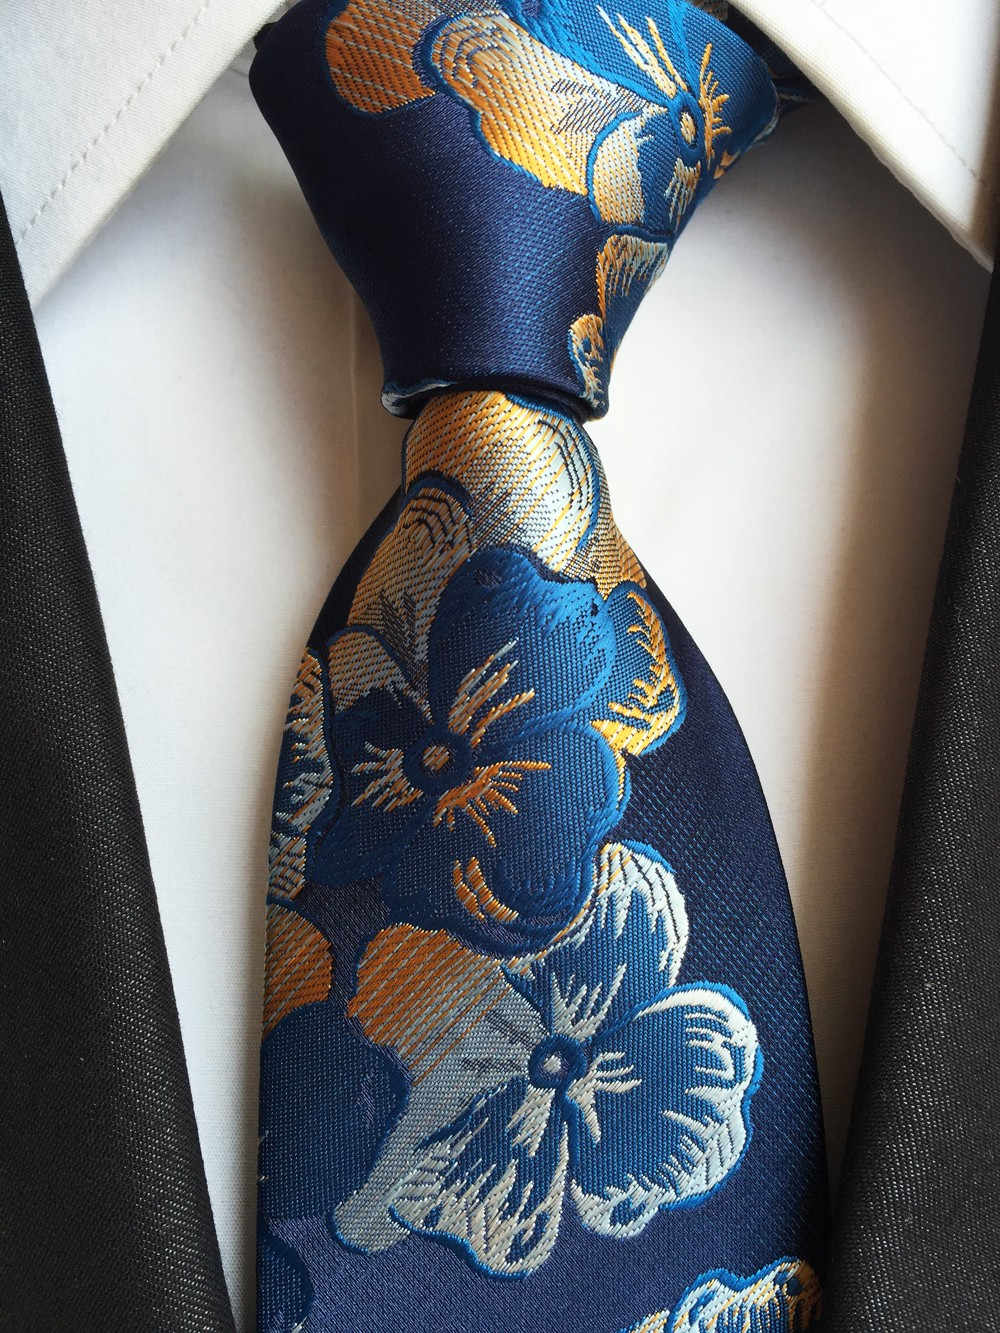 2018 New Classic Floral Baby Navy Blue Gold White Jacquard Woven 100